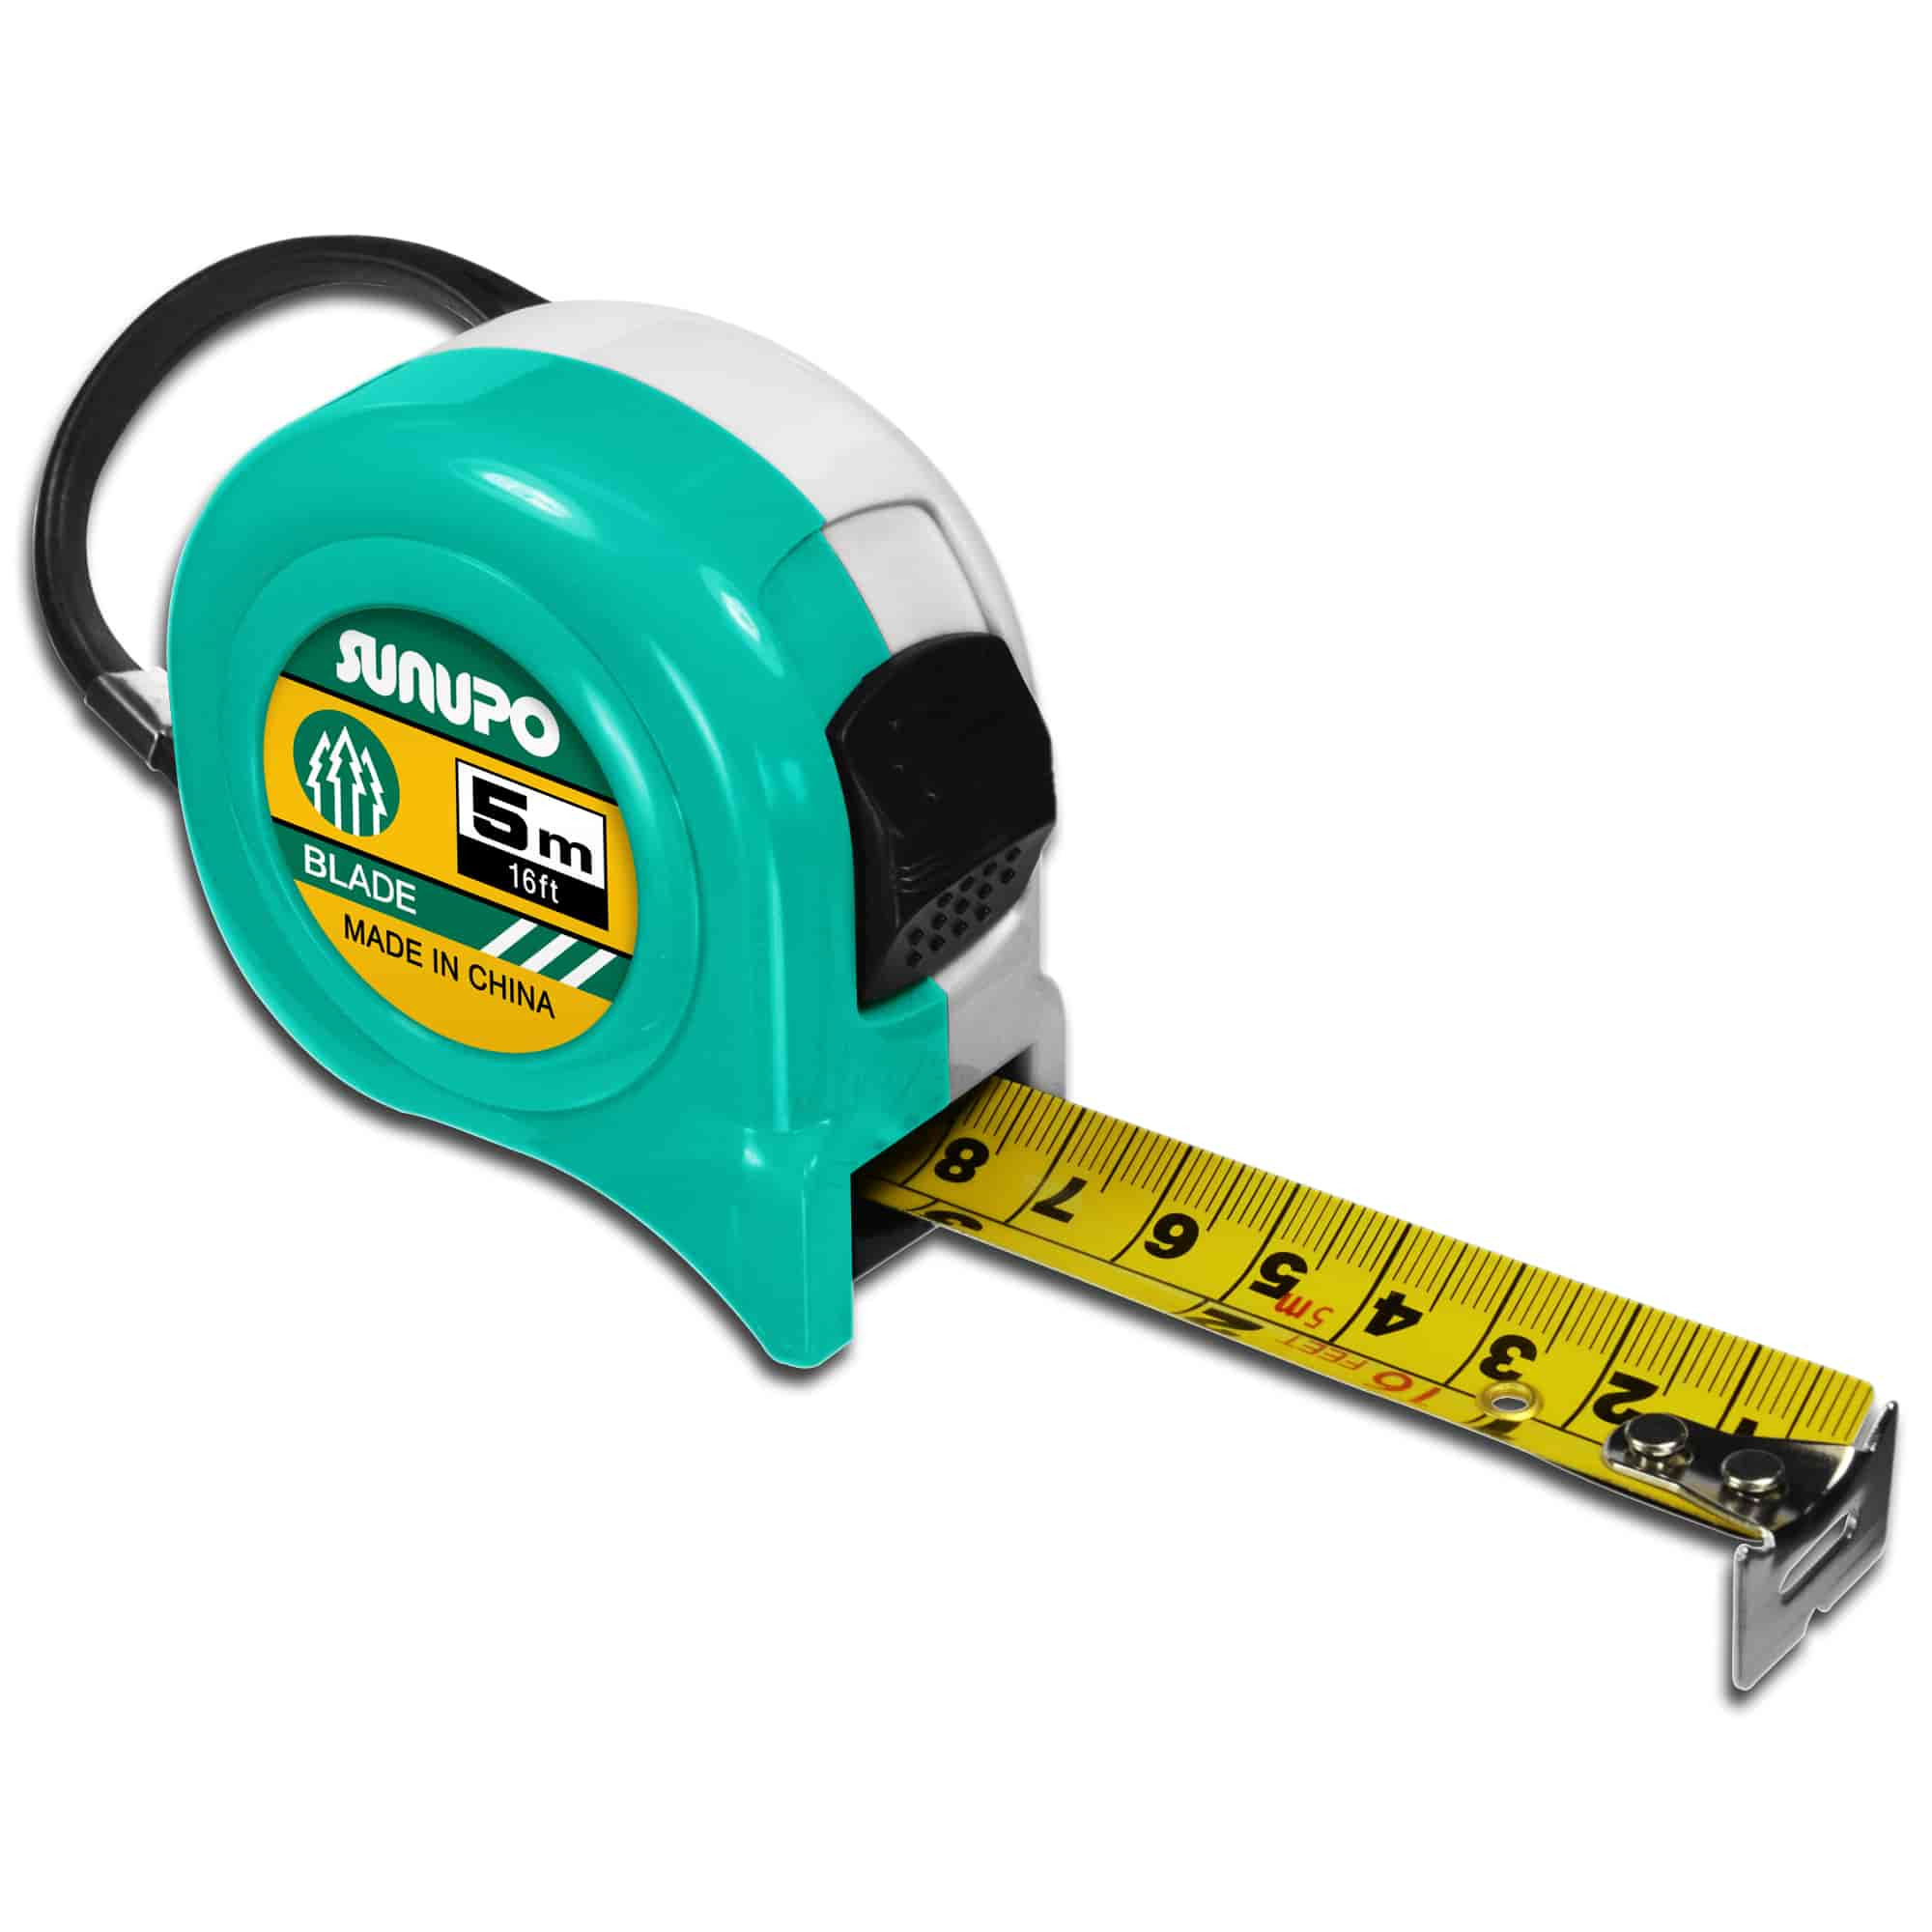 tape measure, measuring tape, how to read a tape measure, ruler measurements, laser tape measure, measuring tools, laser measure, digital tape measure, measuring wheel, laser distance measurer, measuring tape online, types of measurement, how to measure, stanley tape measure, laser measuring tool, inch measurement, inch mark, electronic tape measure, how to use a tape measure, inchi tape; electrical measurements, metric tape measure, steel tape, best tape measure, measuring stick, tape reading, tape measure measurements, sewing tape measure, digital measures, tape measure test, inch tape, tape measure marks, dewalt tape measure, room measurements, milwaukee tape measure, how to measure inches, lufkin tape measure, tape measure inches, reading a measuring tape, meter tape, printable measuring tape, tape measure lines, tailor measuring tape, measuring tape for clothes, cloth tape measure, how to read a measuring tape in inches, surveyors tape, fabric tape measure, tape measure image, tape rule, soft tape measure, bagel tape measure, how to read a tape measure in mm, smart tape measure, tape measure holder, laser tape, tape measure with fractions, tape measure mm, tape measure uses, screwfix tape measure, how to read measurements, bagel smart tape measure, electronic distance measurement, 100 ft tape measure, amazon tape measure, adhesive measuring tape